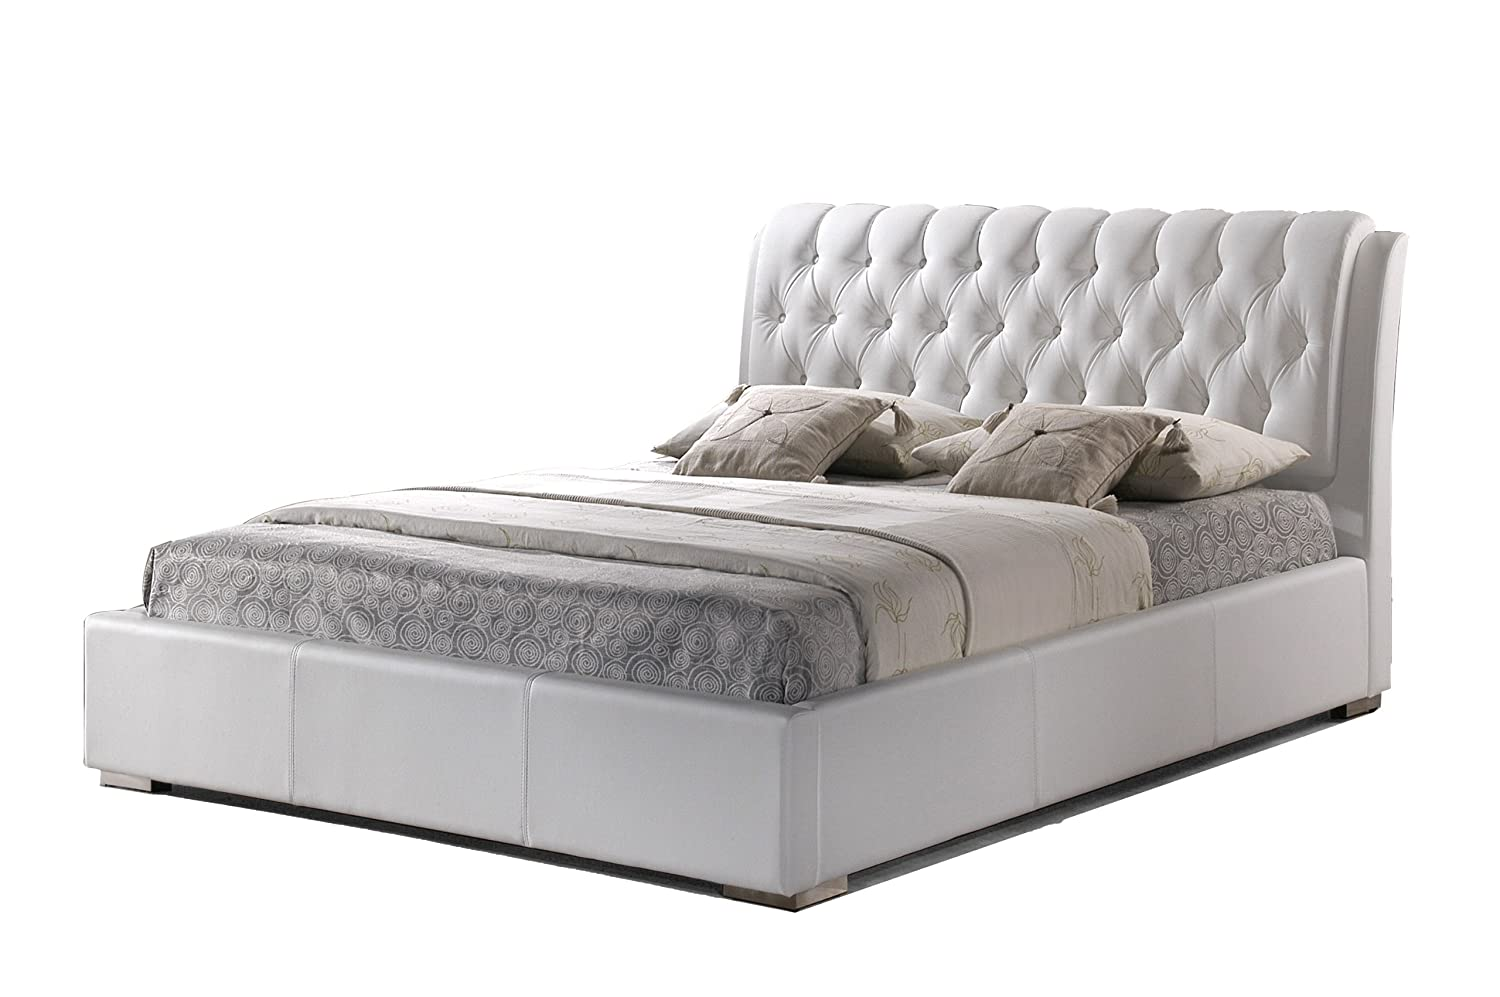 amazoncom baxton studio bianca white modern bed with tufted headboard king kitchen dining